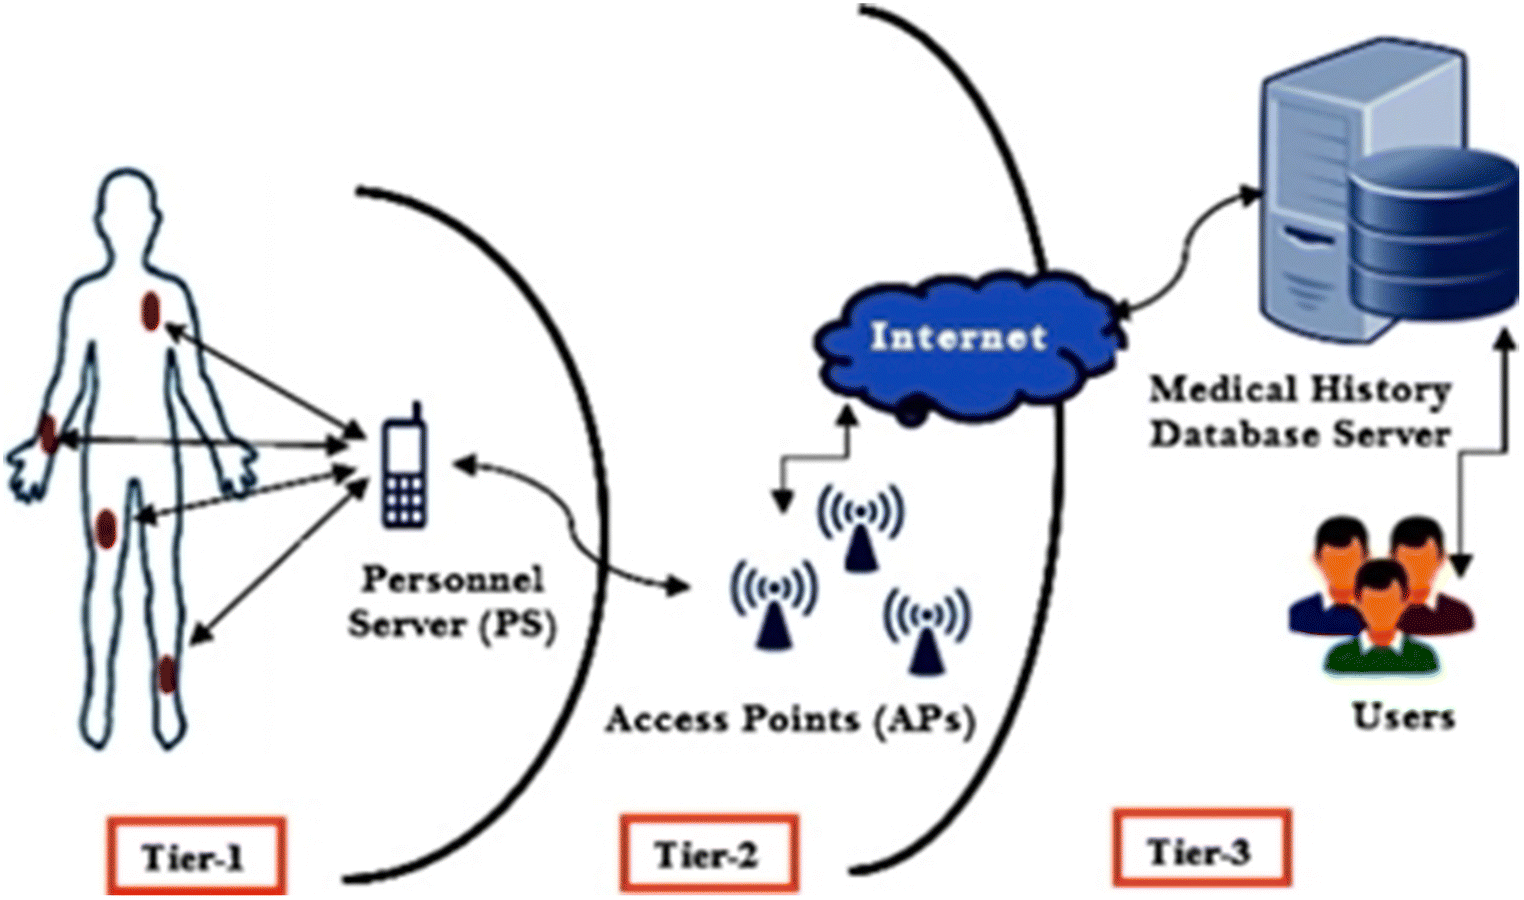 An IoT based efficient hybrid recommender system for cardiovascular